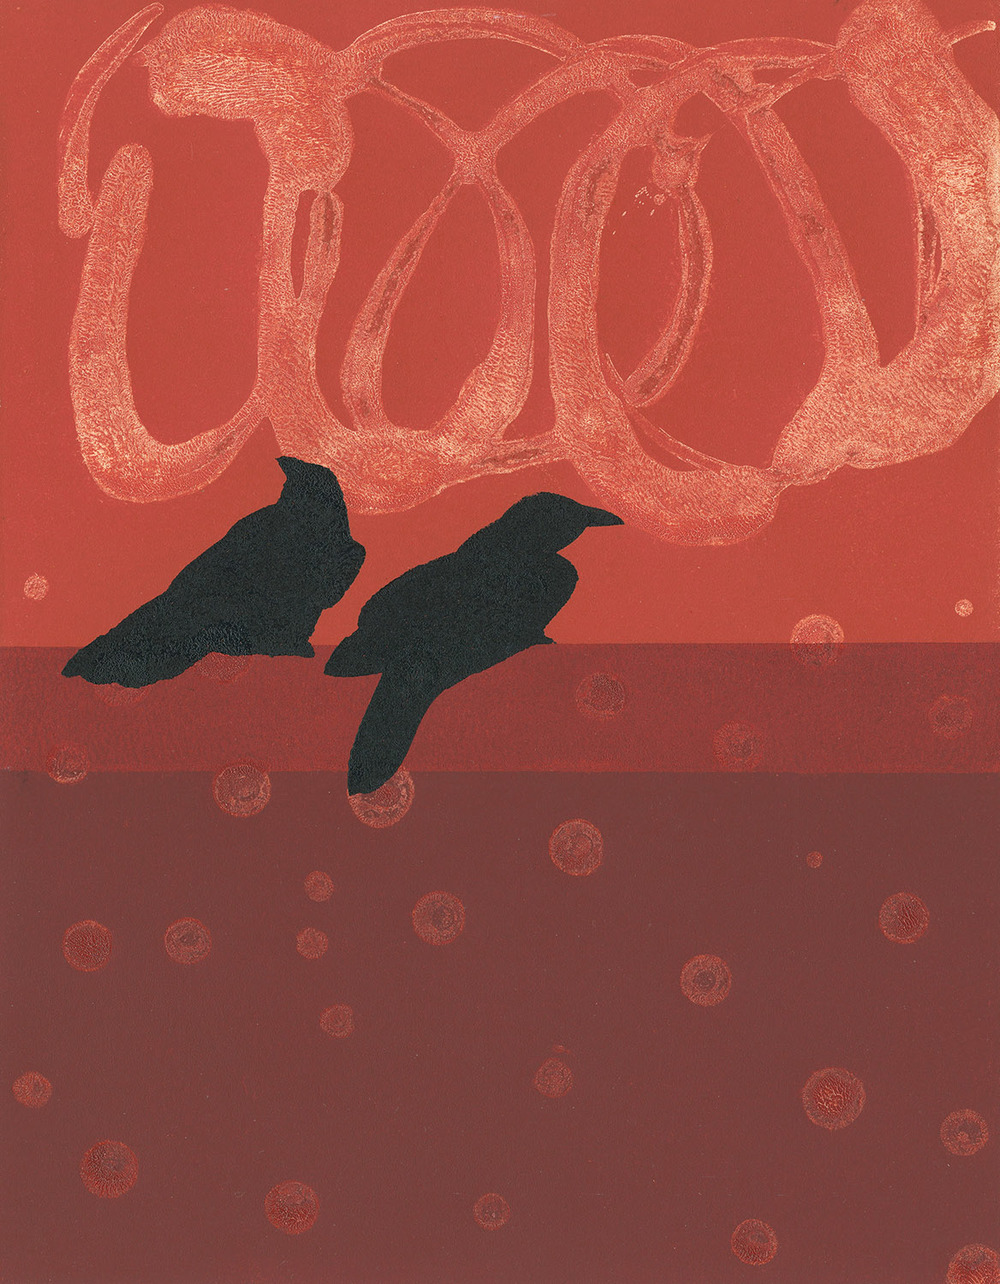 Ravens on the Redwall